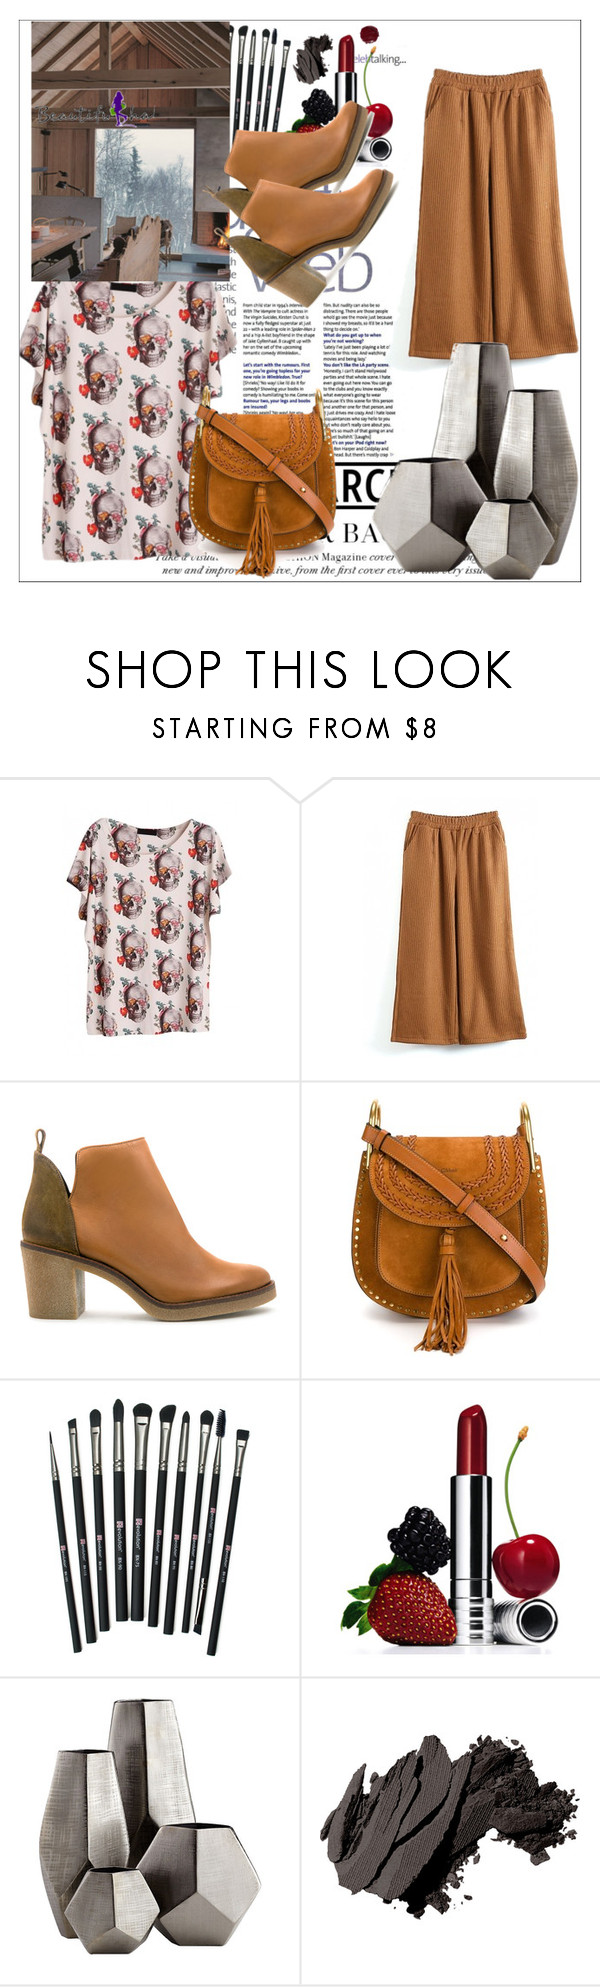 """Beautifulhalo II/33"" by ljubicica988 ❤ liked on Polyvore featuring Miista, Chloé, Revolution, Clinique, Cyan Design, Bobbi Brown Cosmetics and bhalo"